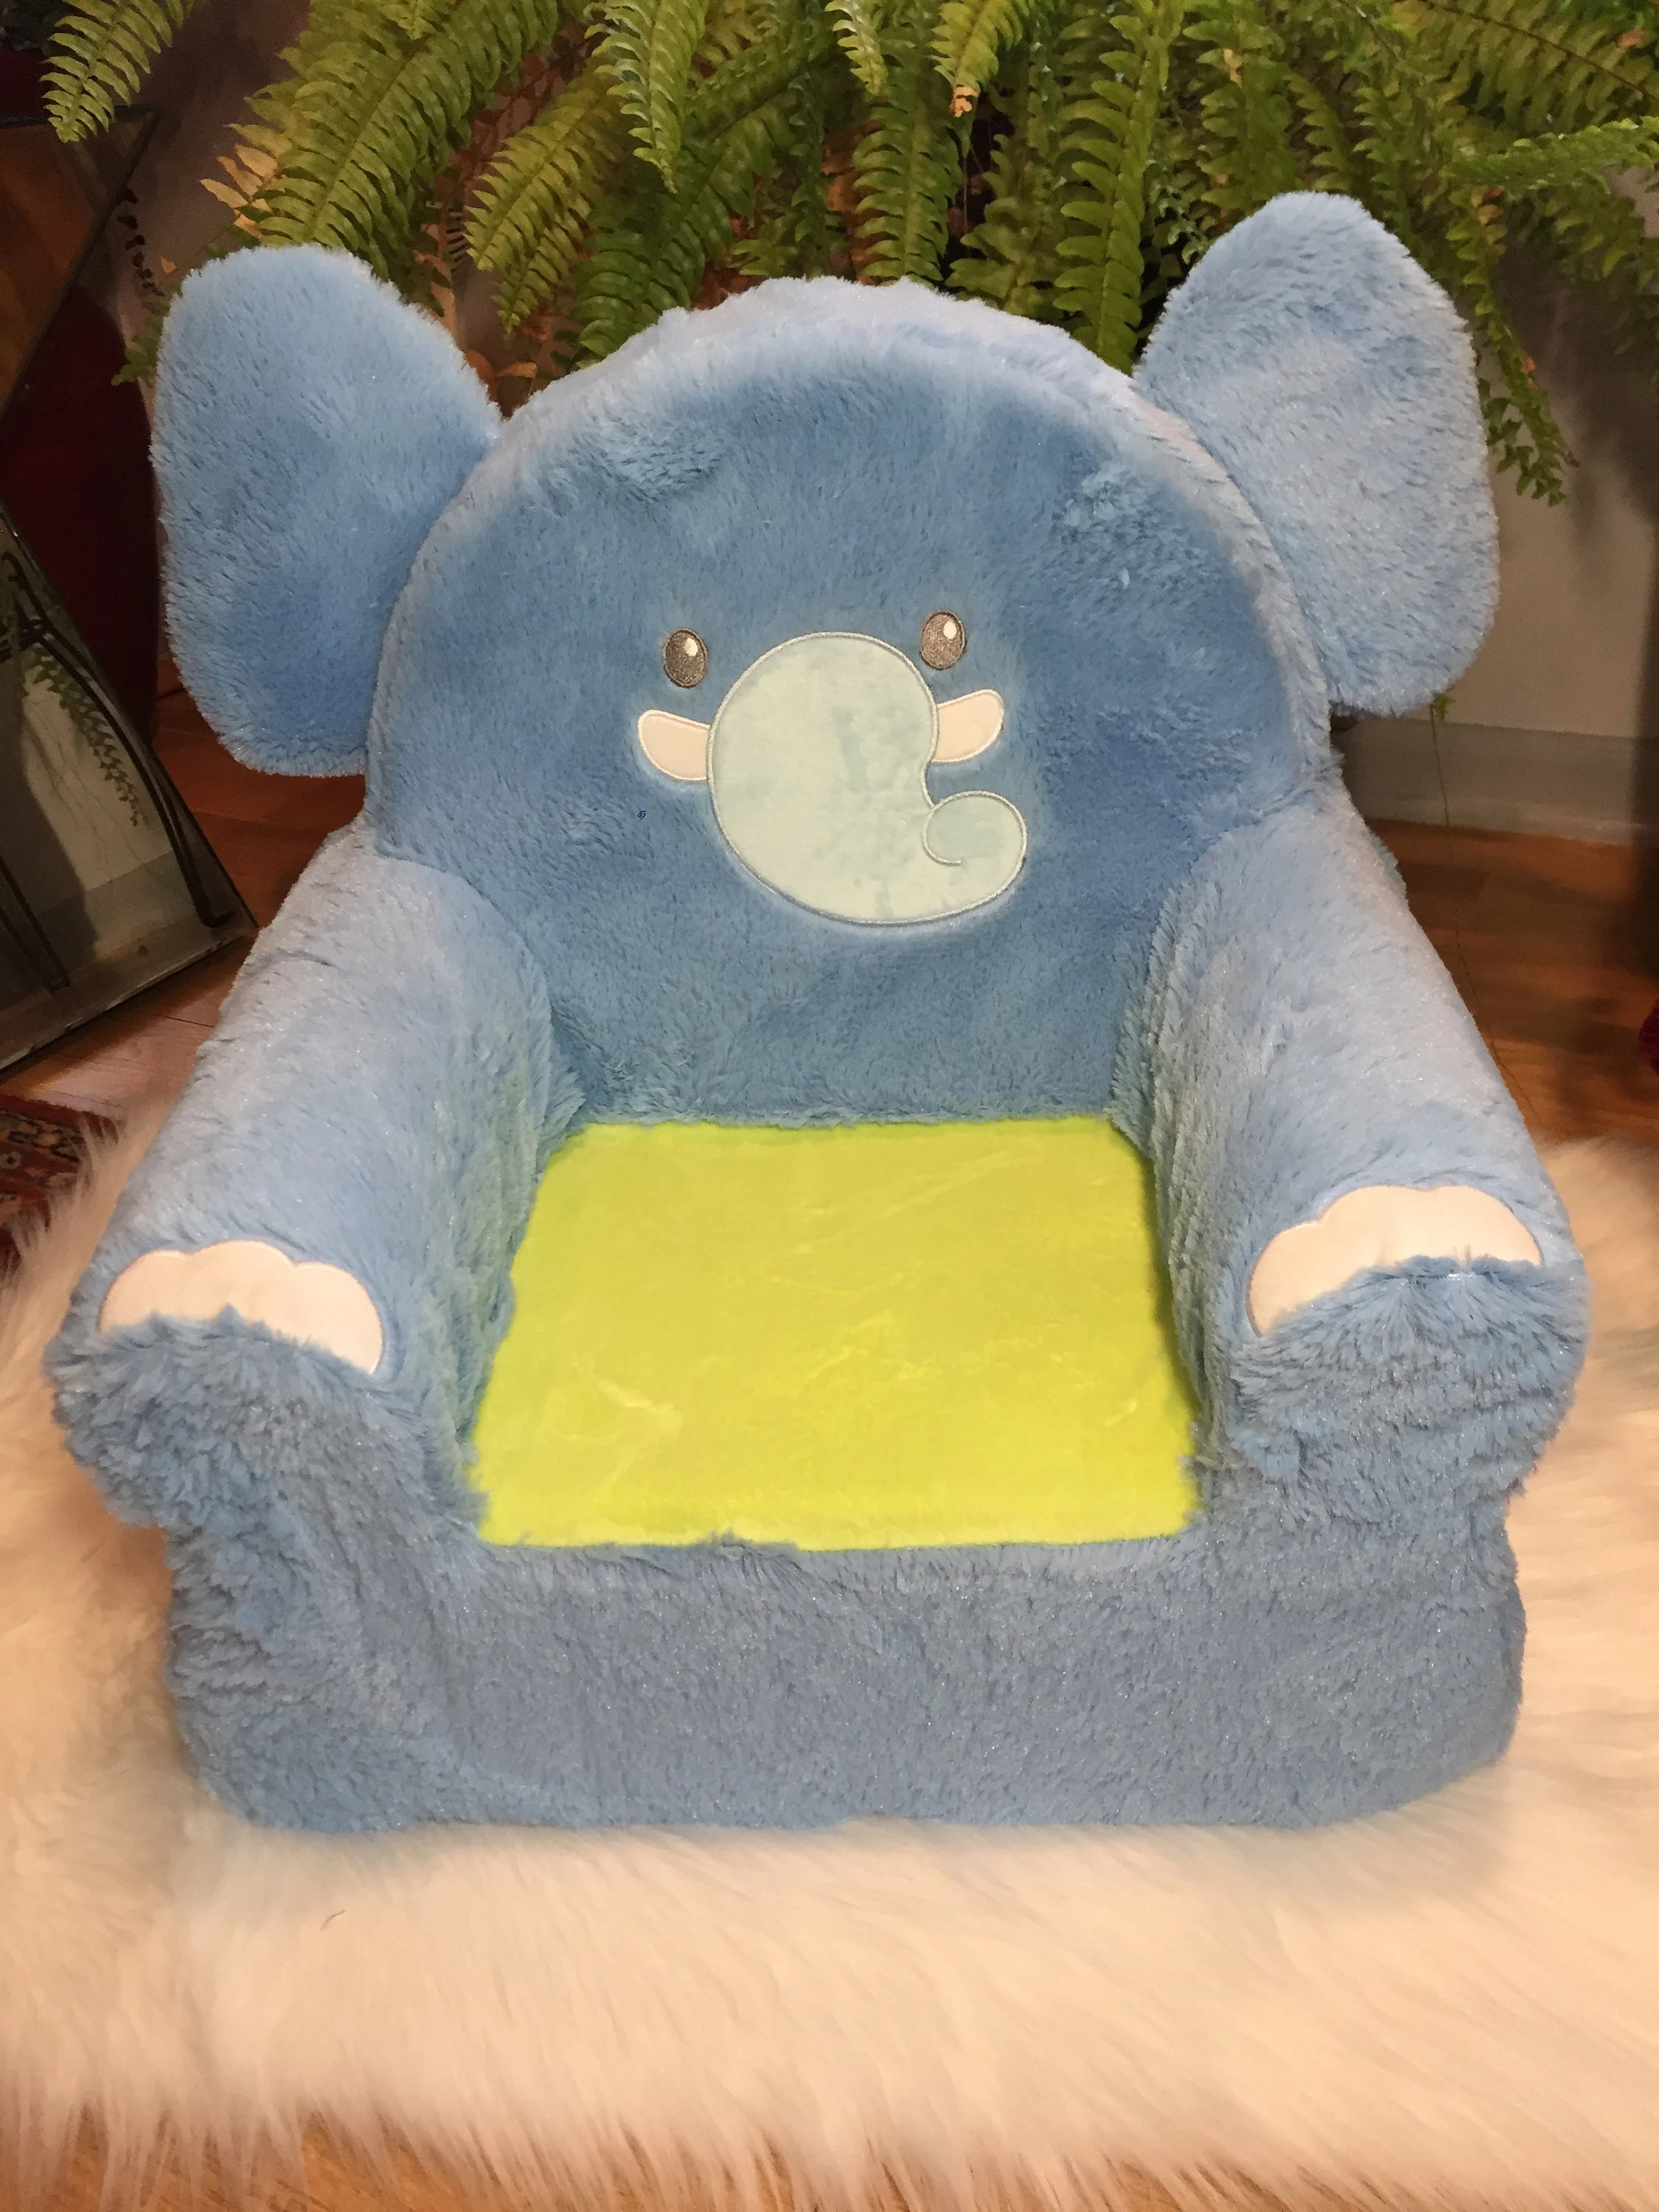 Monogrammed Toddler Chair Personalized Kids Chair Monogrammed Kids Chair Kids Lounge Chair Toddler Chair Plush Chair Elephant Chair